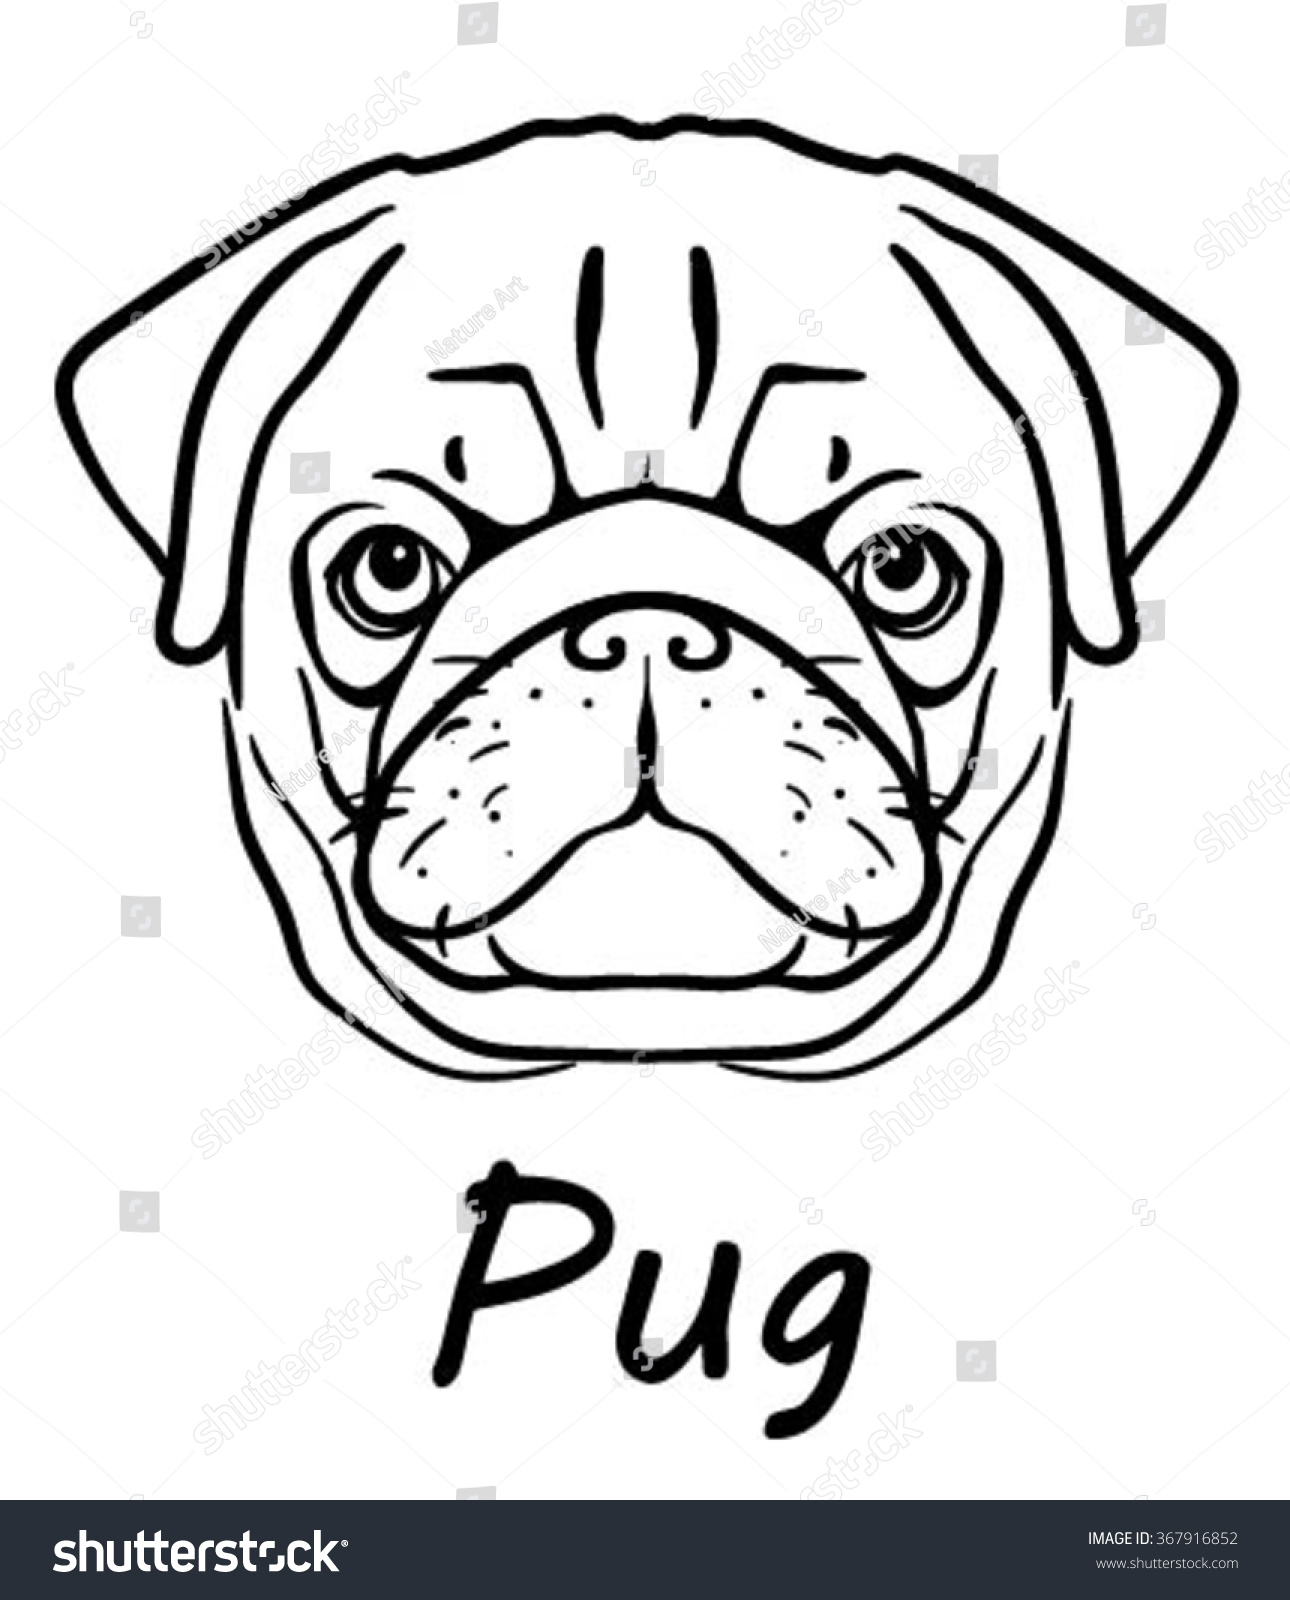 Line Drawing Of A Dog S Face : Pug line drawing pictures to pin on pinterest daddy